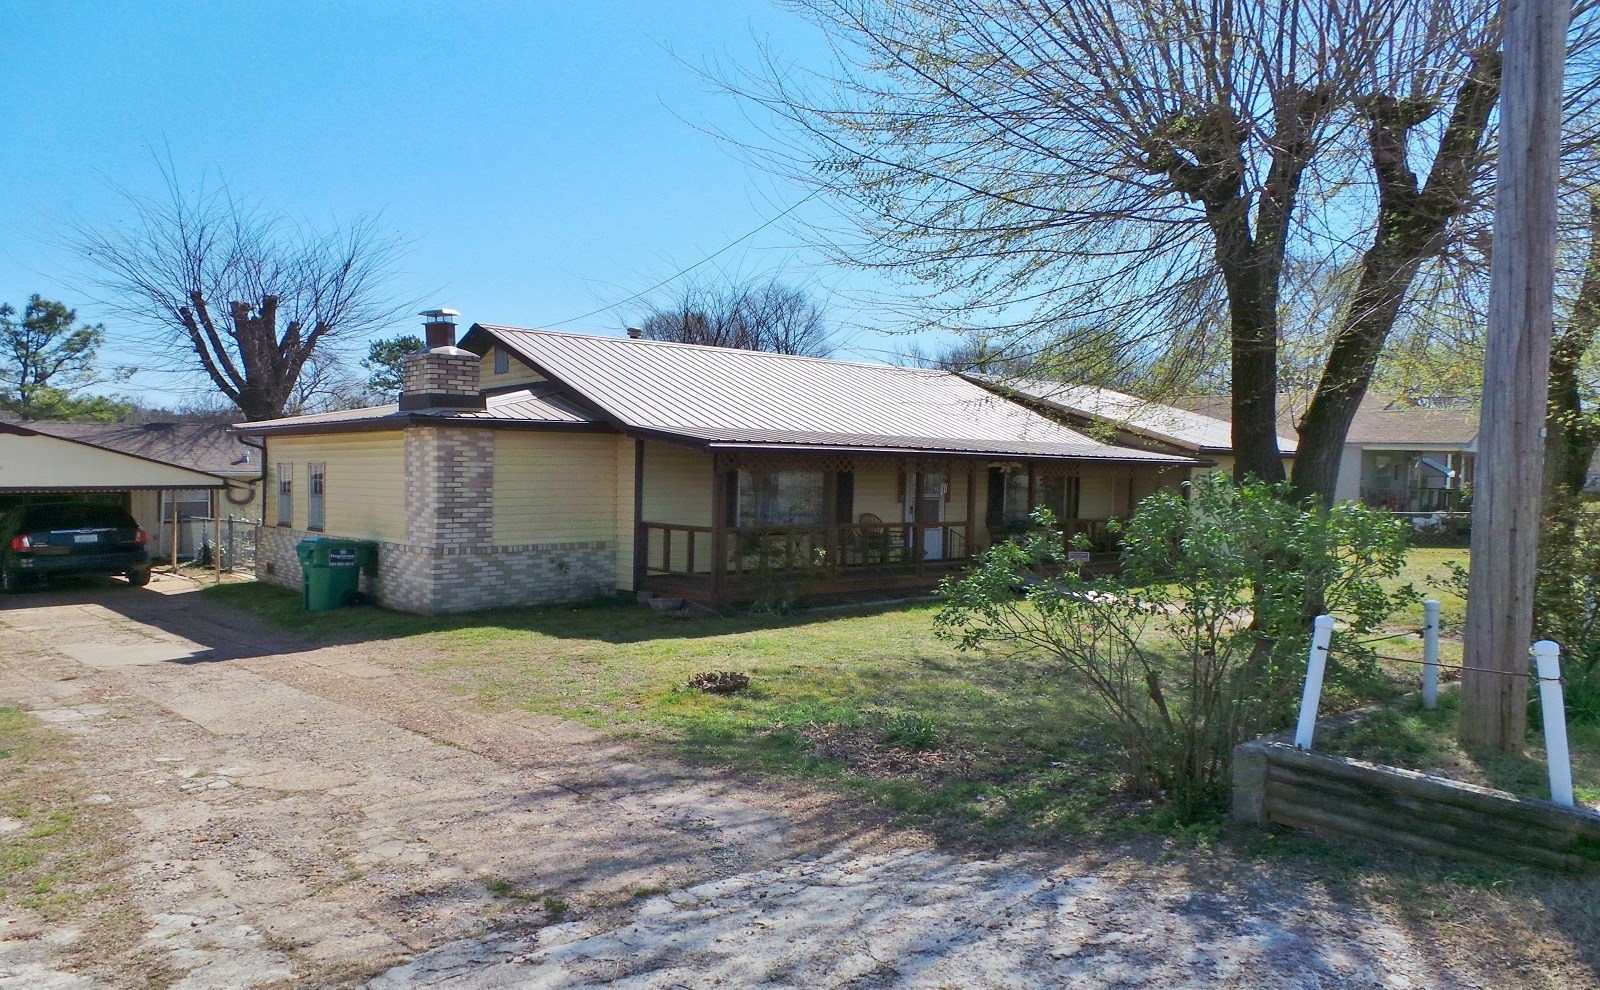 HOME IN COUNTY SEAT TOWN OF YELLVILLE ARKANSAS FOR SALE